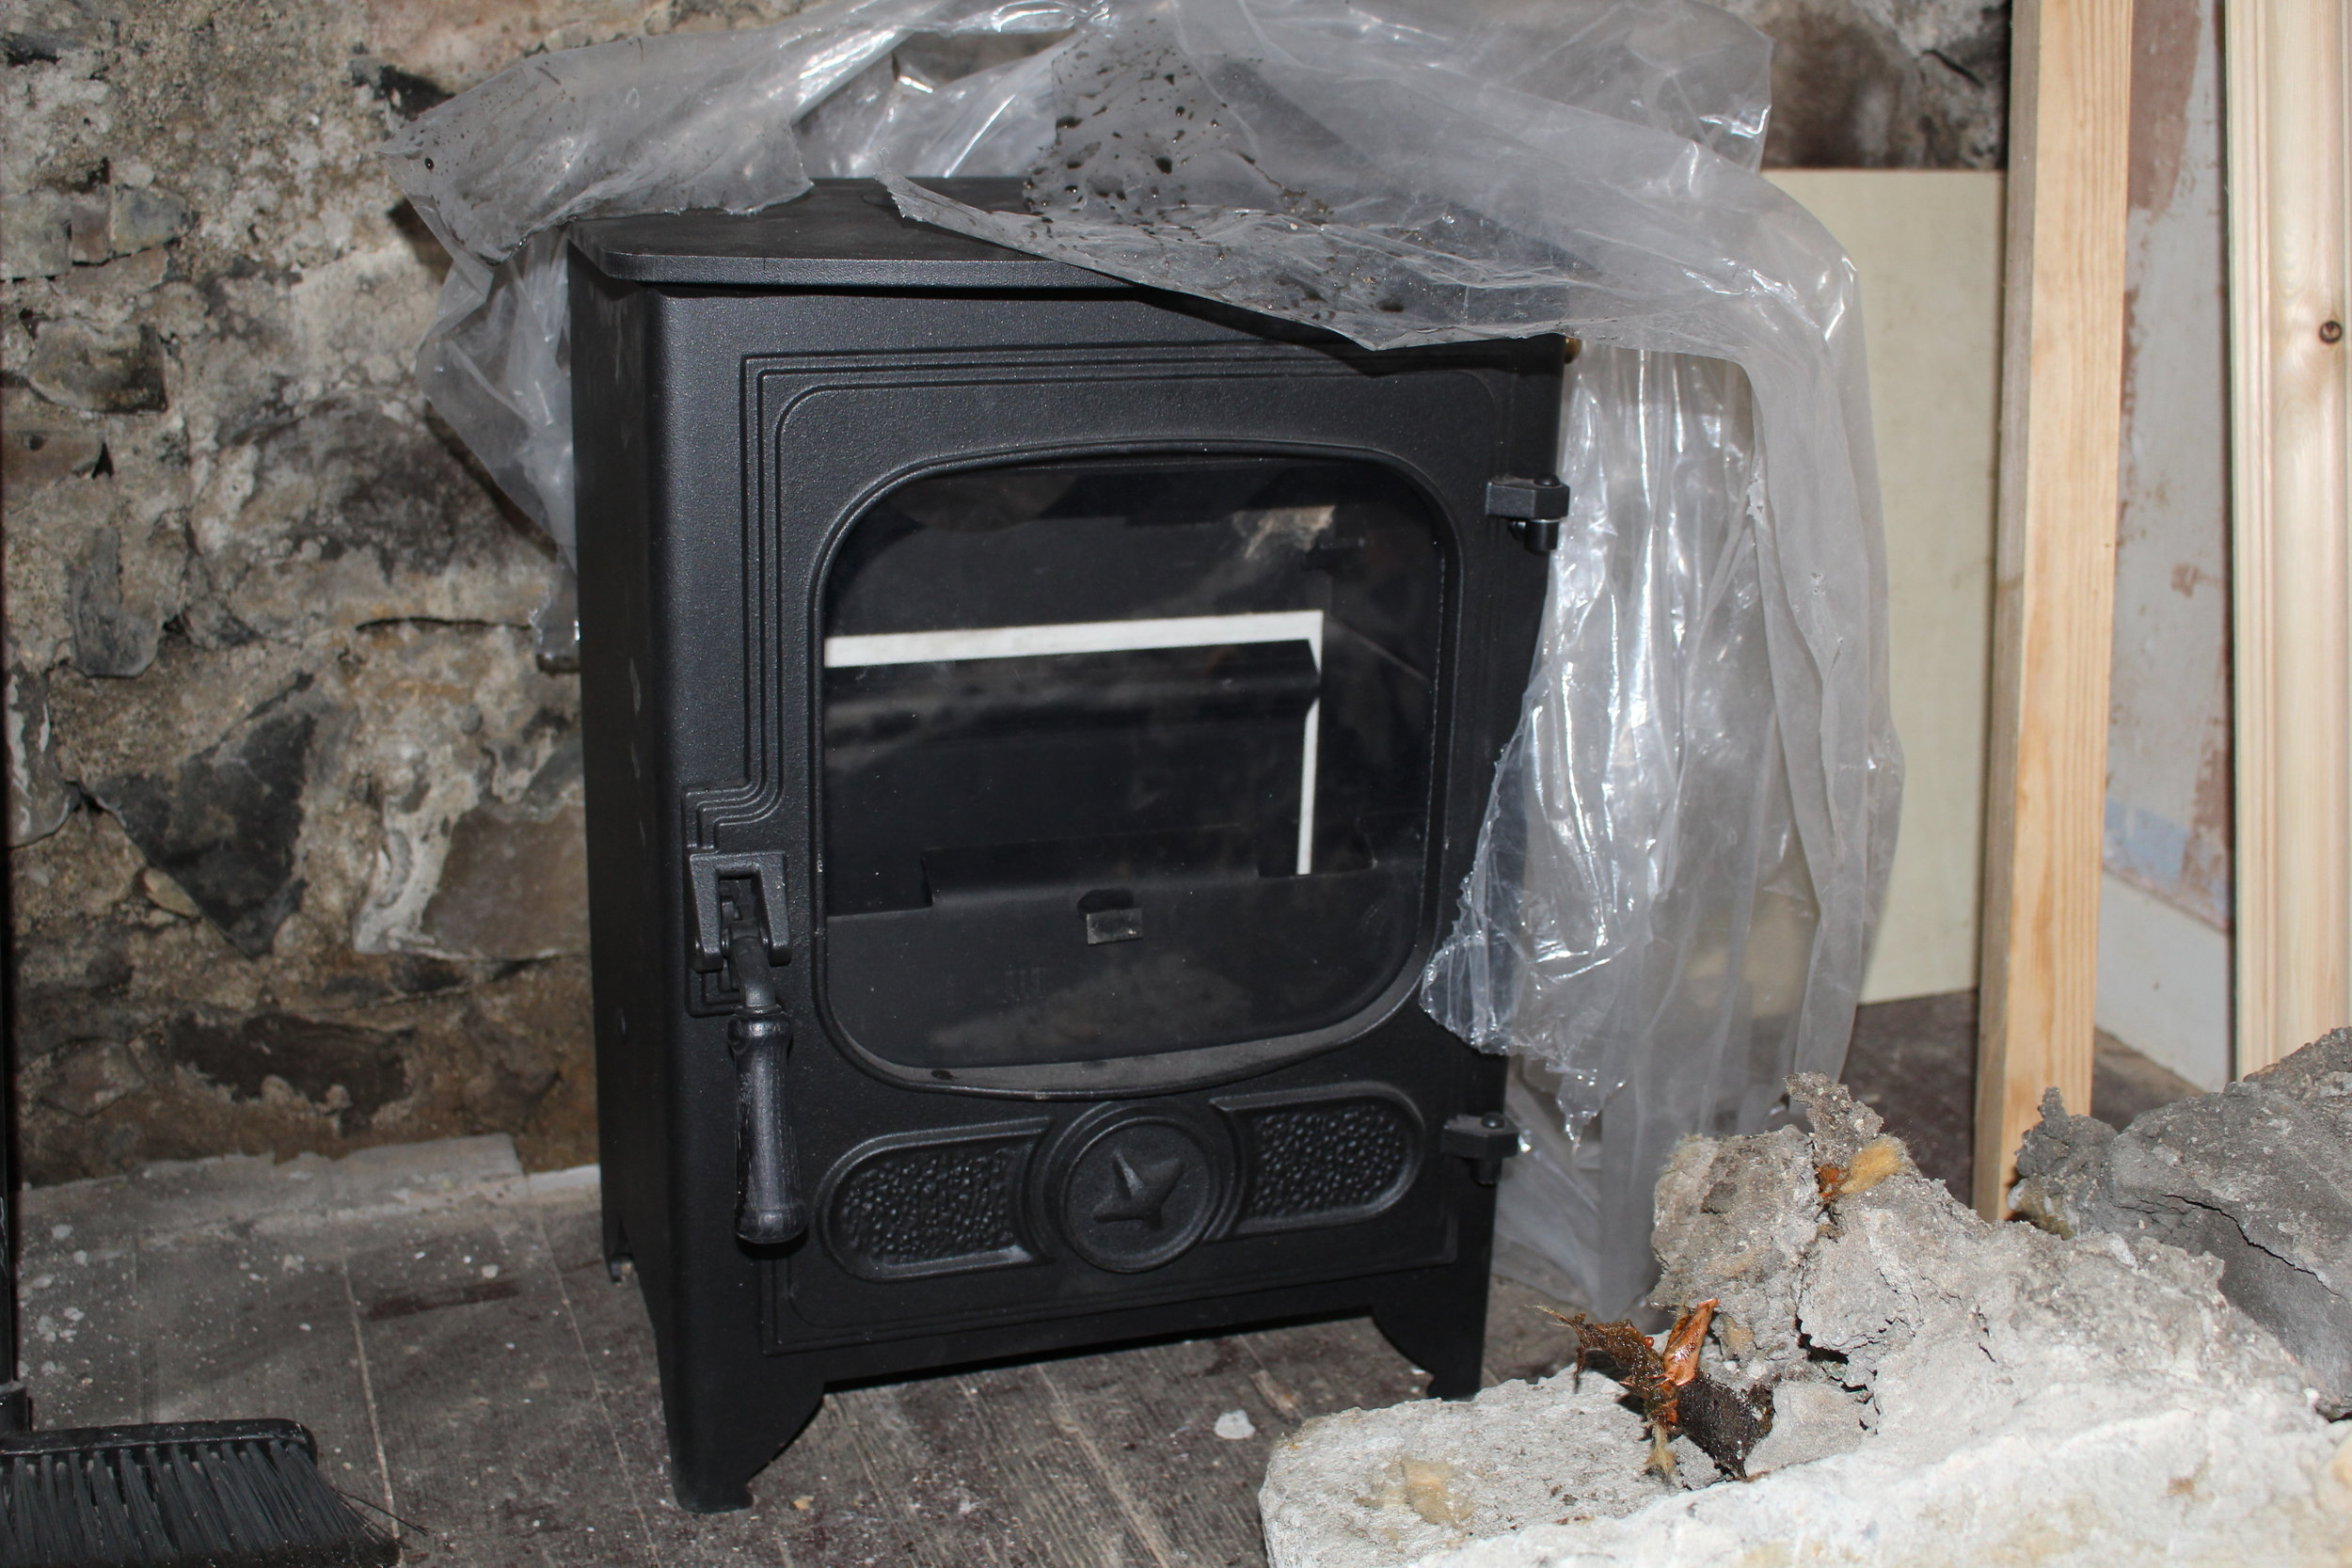 We purchased a 5kW multifuel stove, flue and all fittings from Alex at  Bonk and Co.  in Inverness. We felt the heat output would be sufficient for the space and it also keeps building regulation requirements simpler than a bigger stove. We wanted the stove to be capable of burning peat as well as wood.